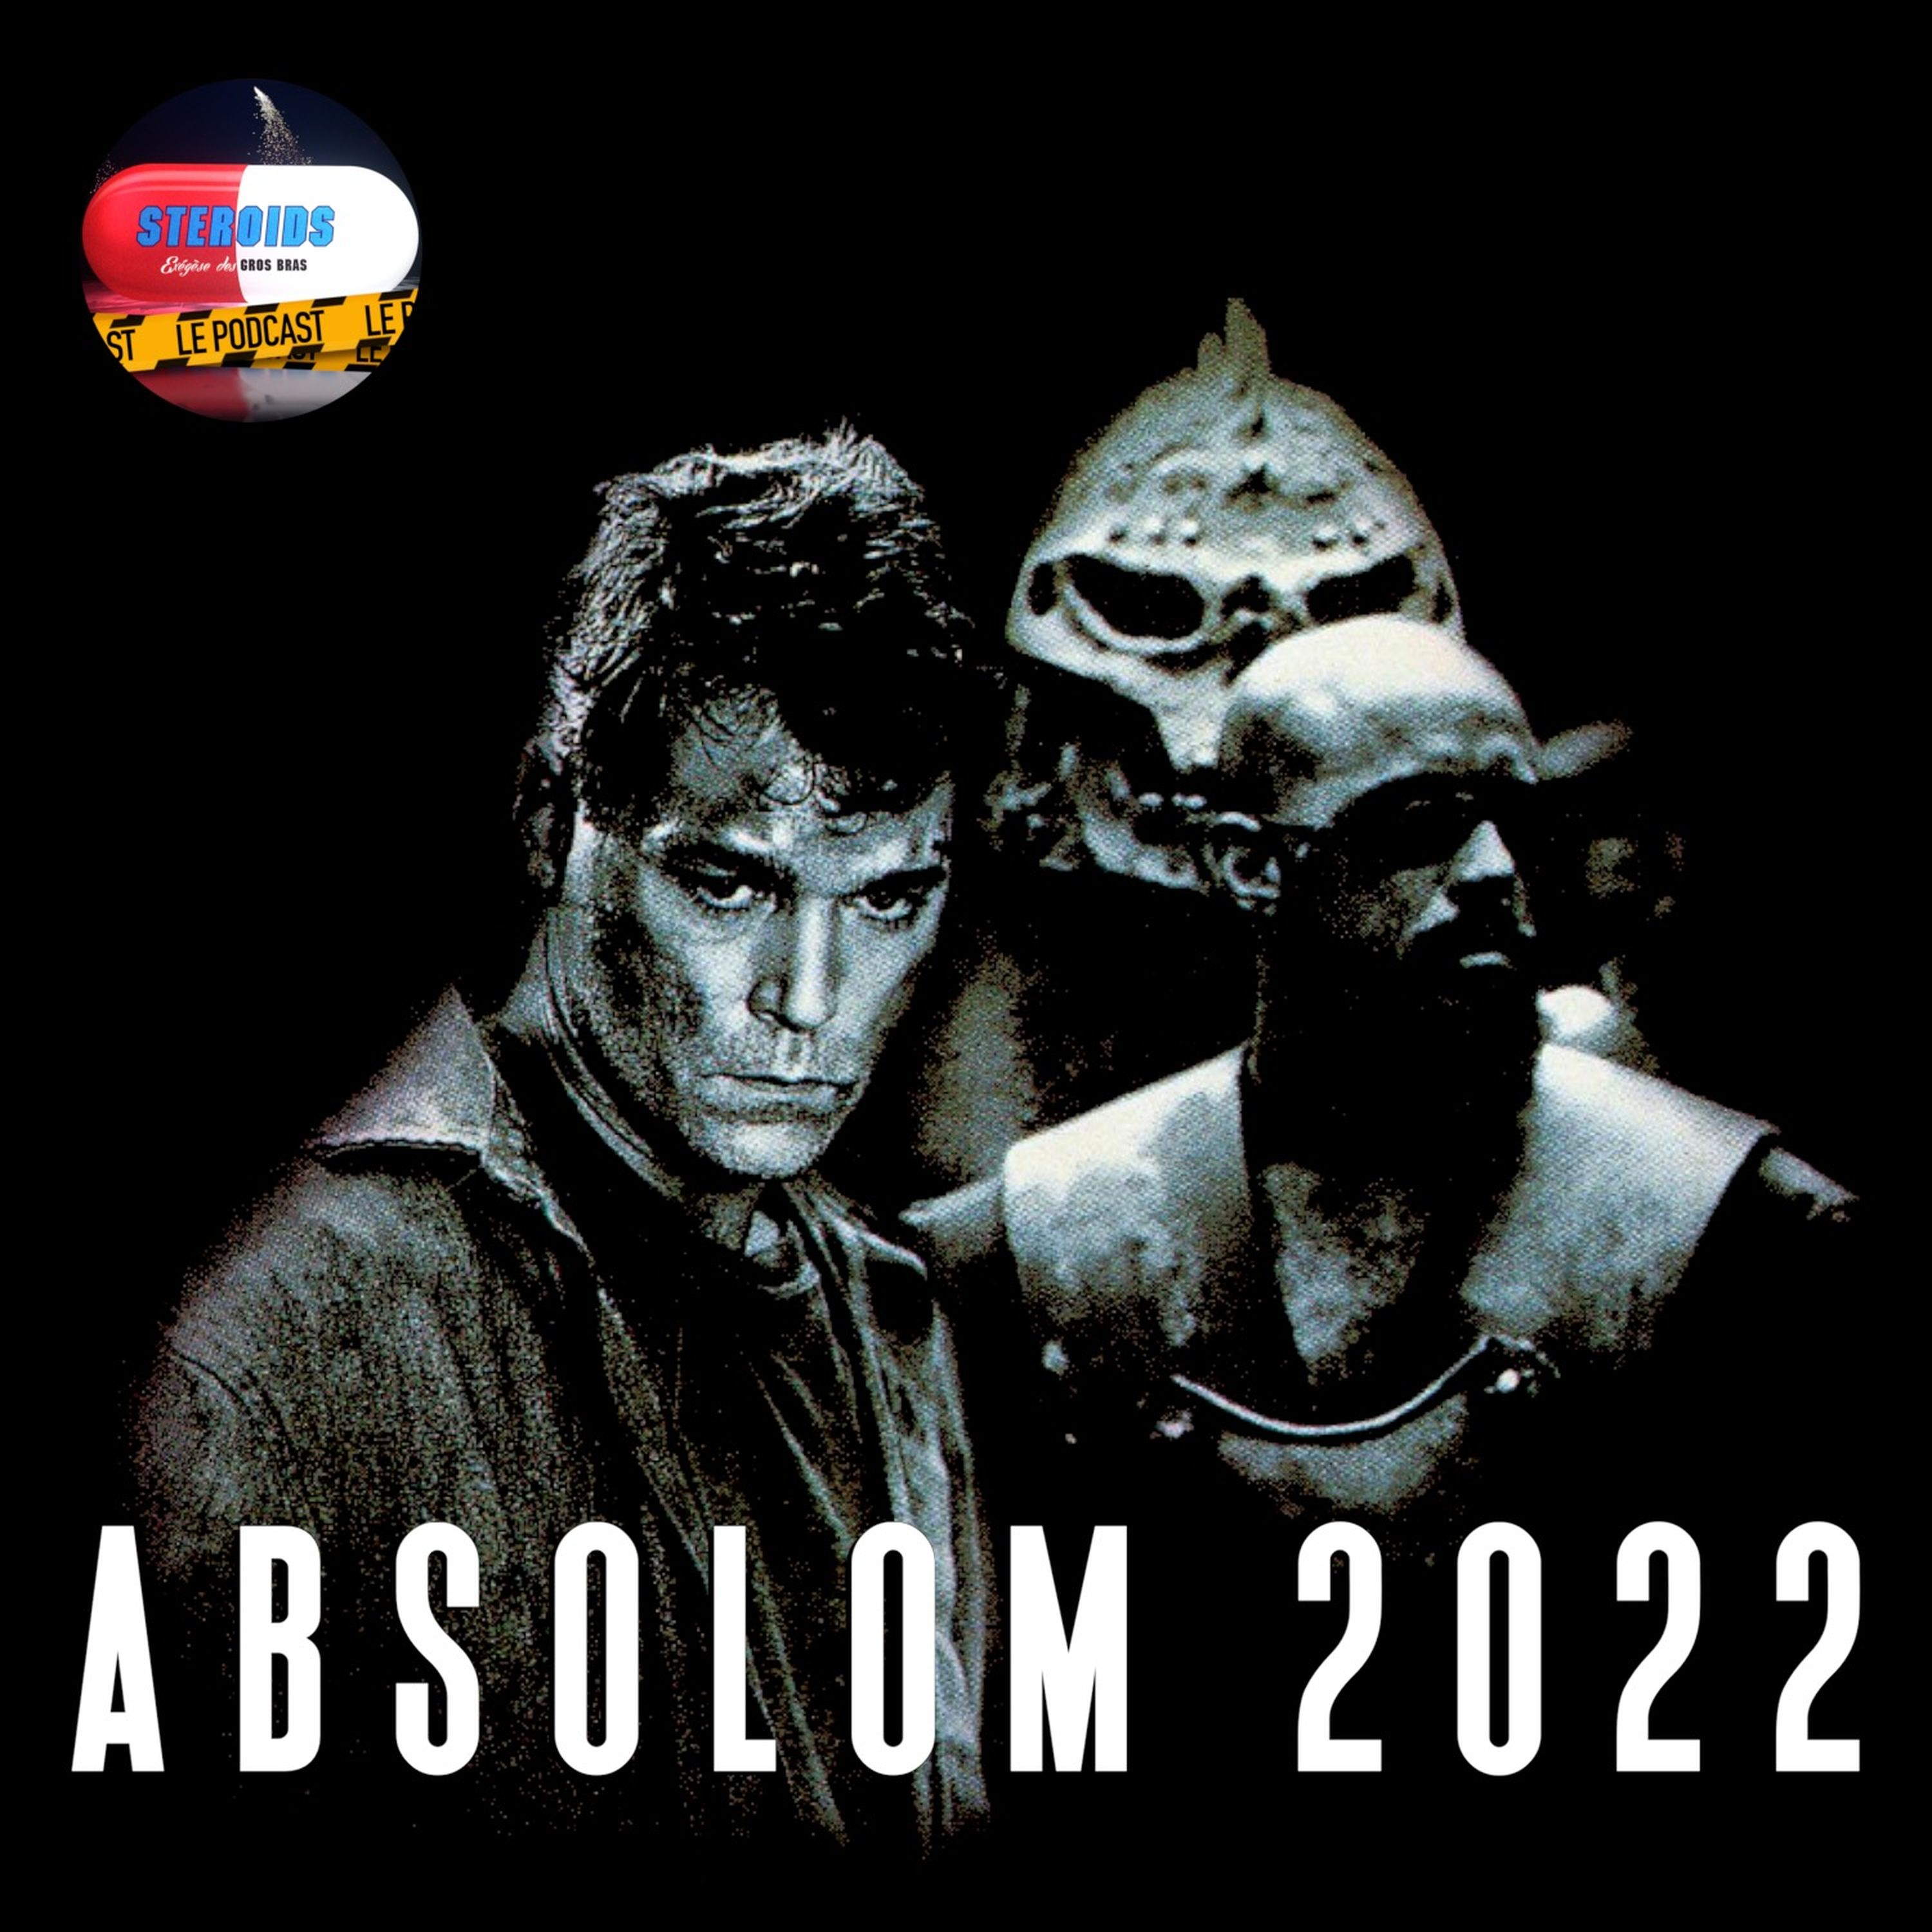 STEROIDS - LE PODCAST : ABSOLOM 2022